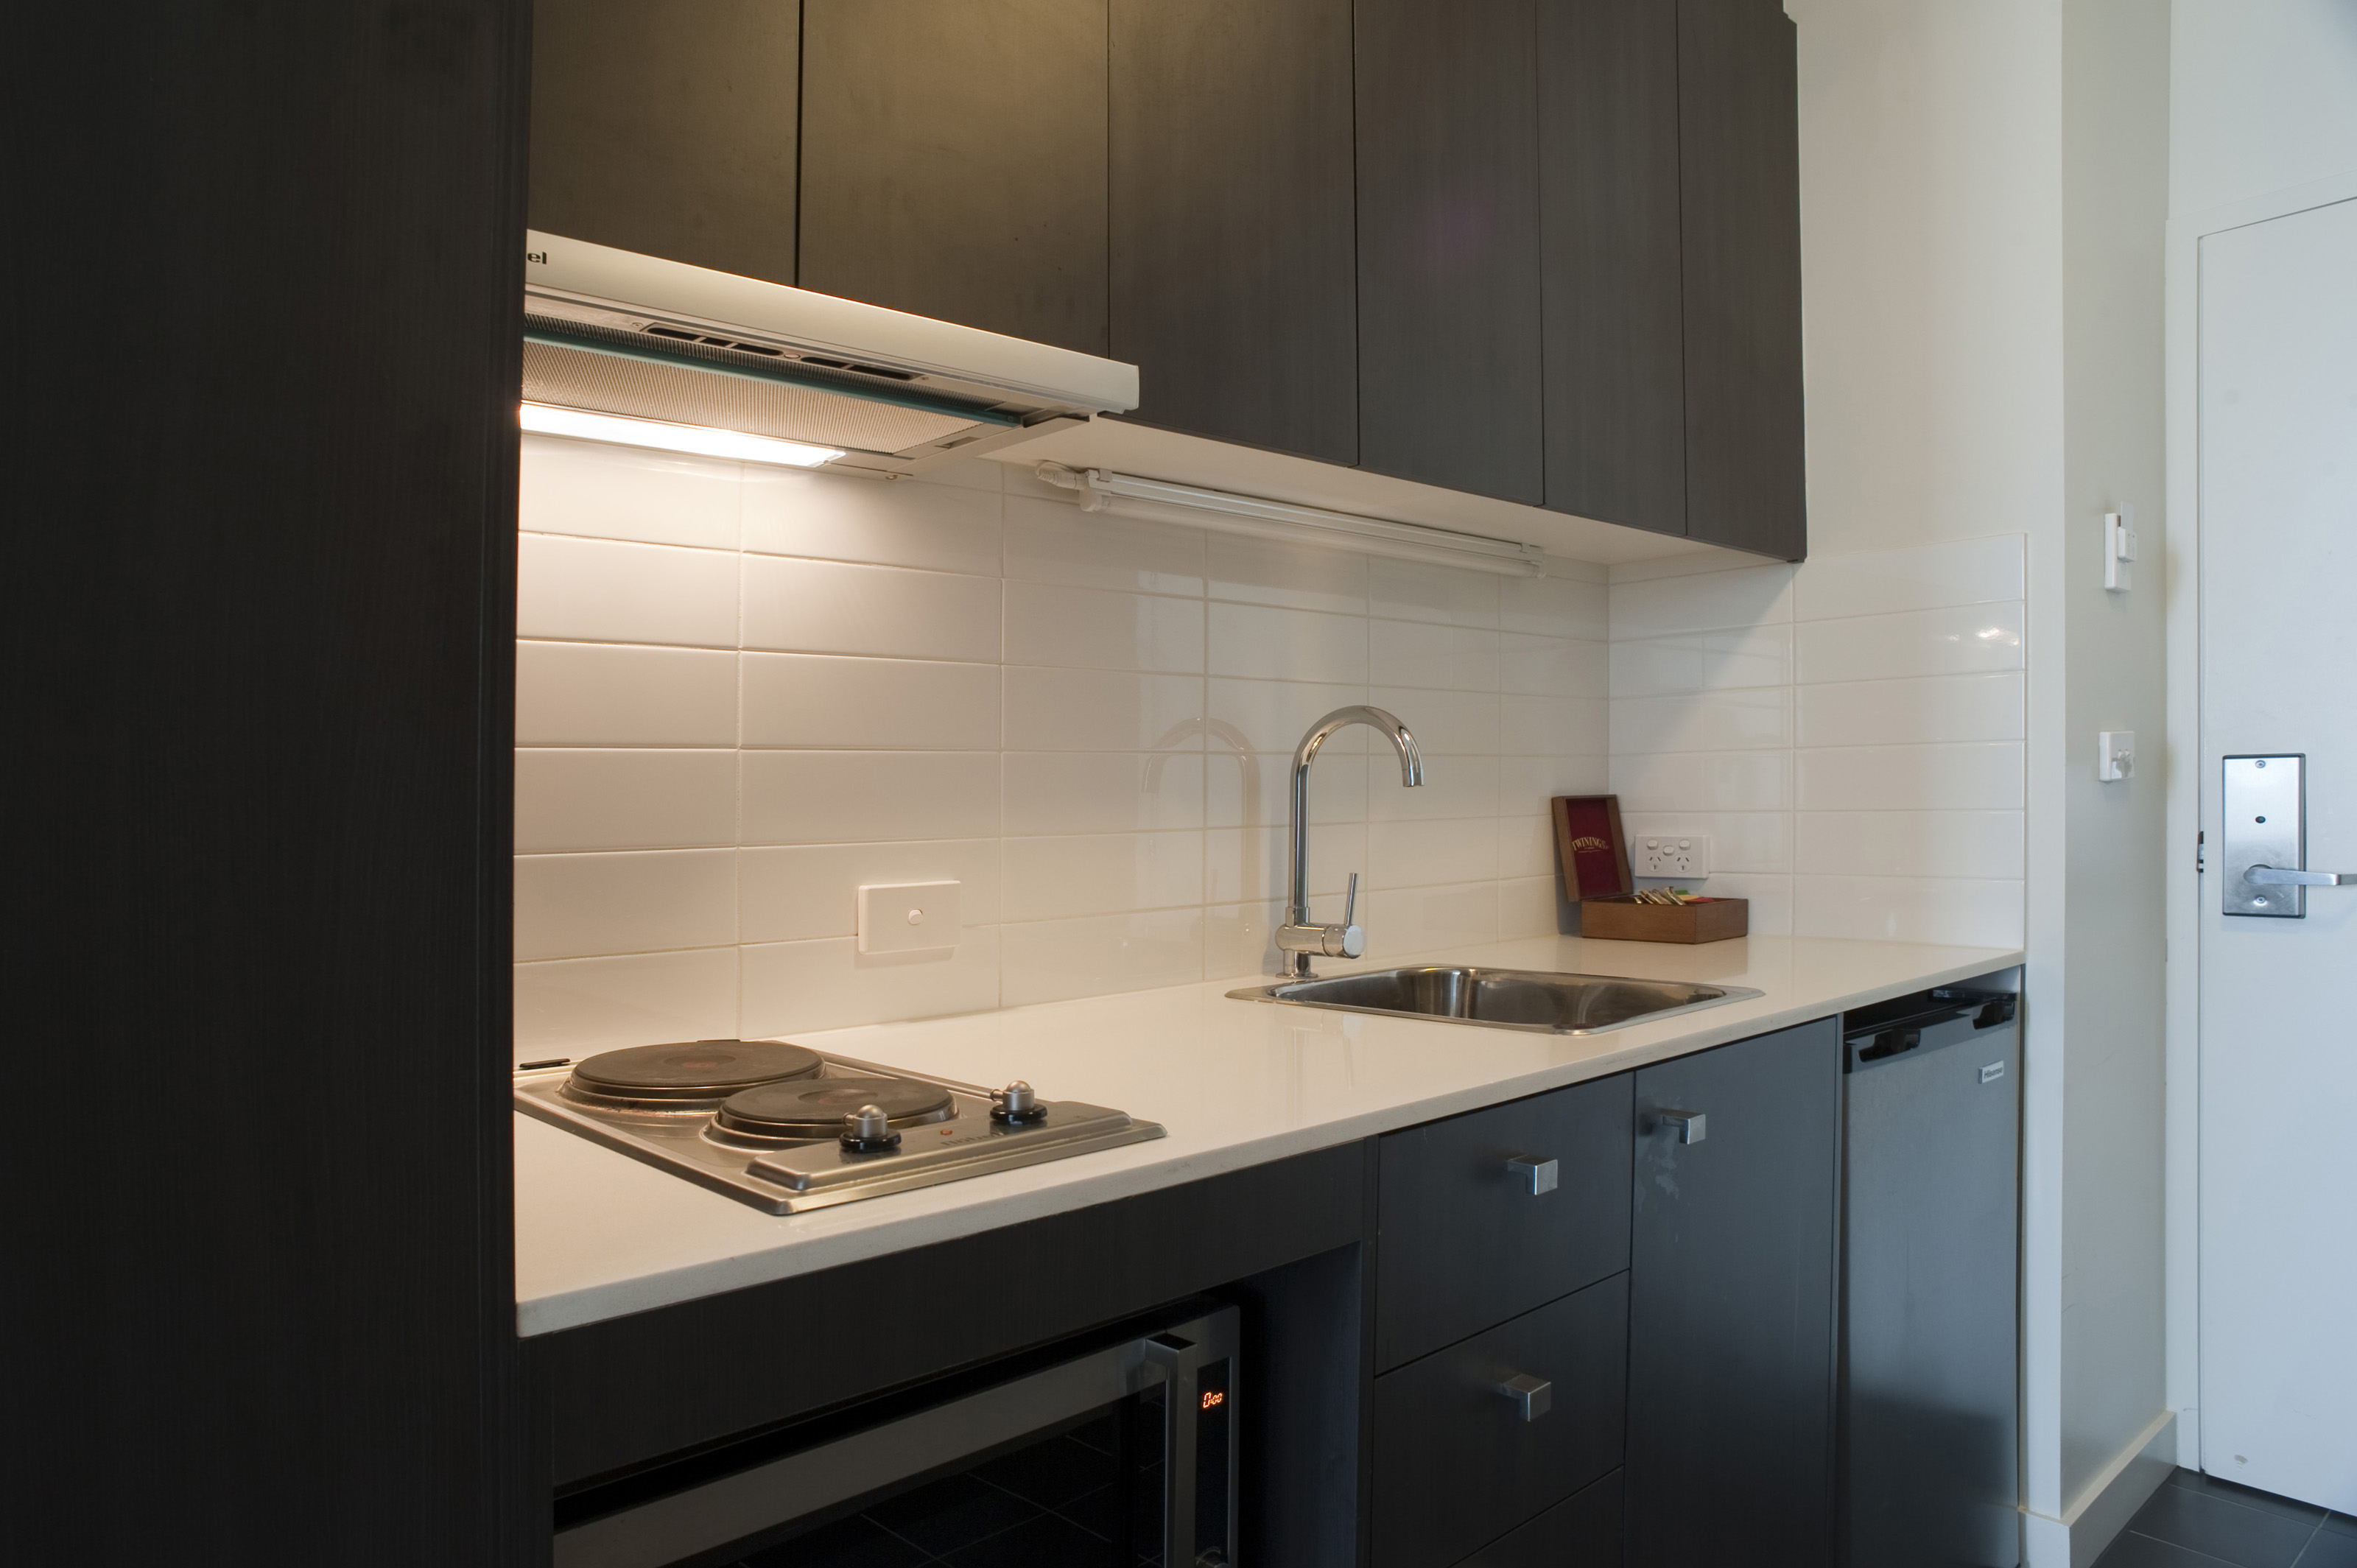 Interior of a modern compact kitchen with black cabinetry and a white tiled  splashback above a